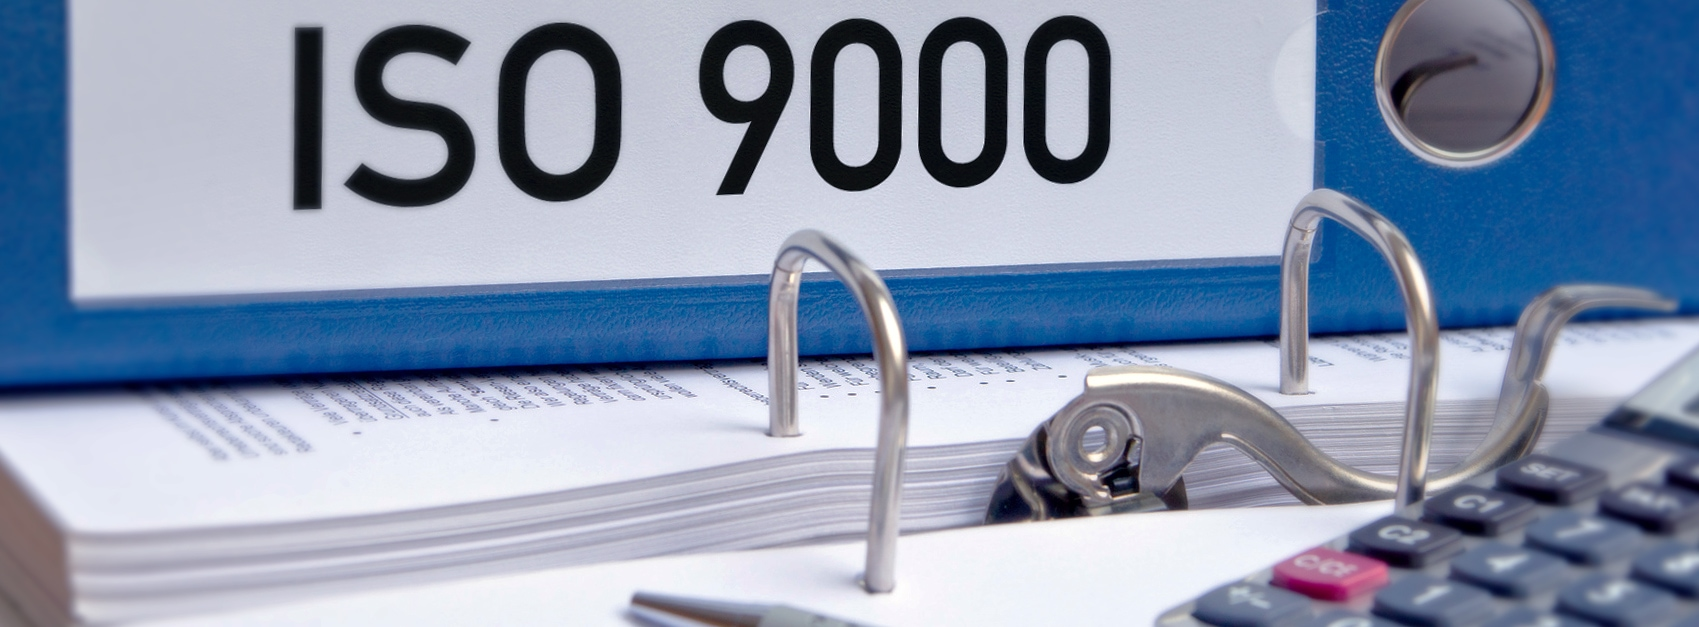 ISO 9001:2015 webinar: Blue ISO folder laying on a table